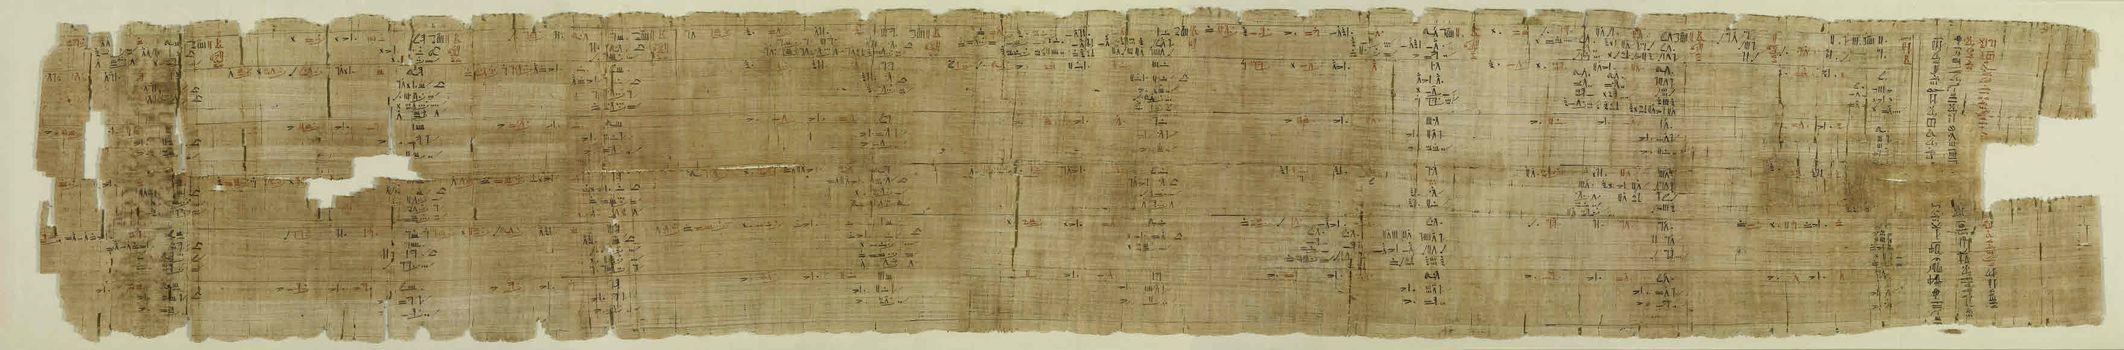 Title of the Rhind Mathematical Papyrus from the tomb of an ancient Egyptian scribe.